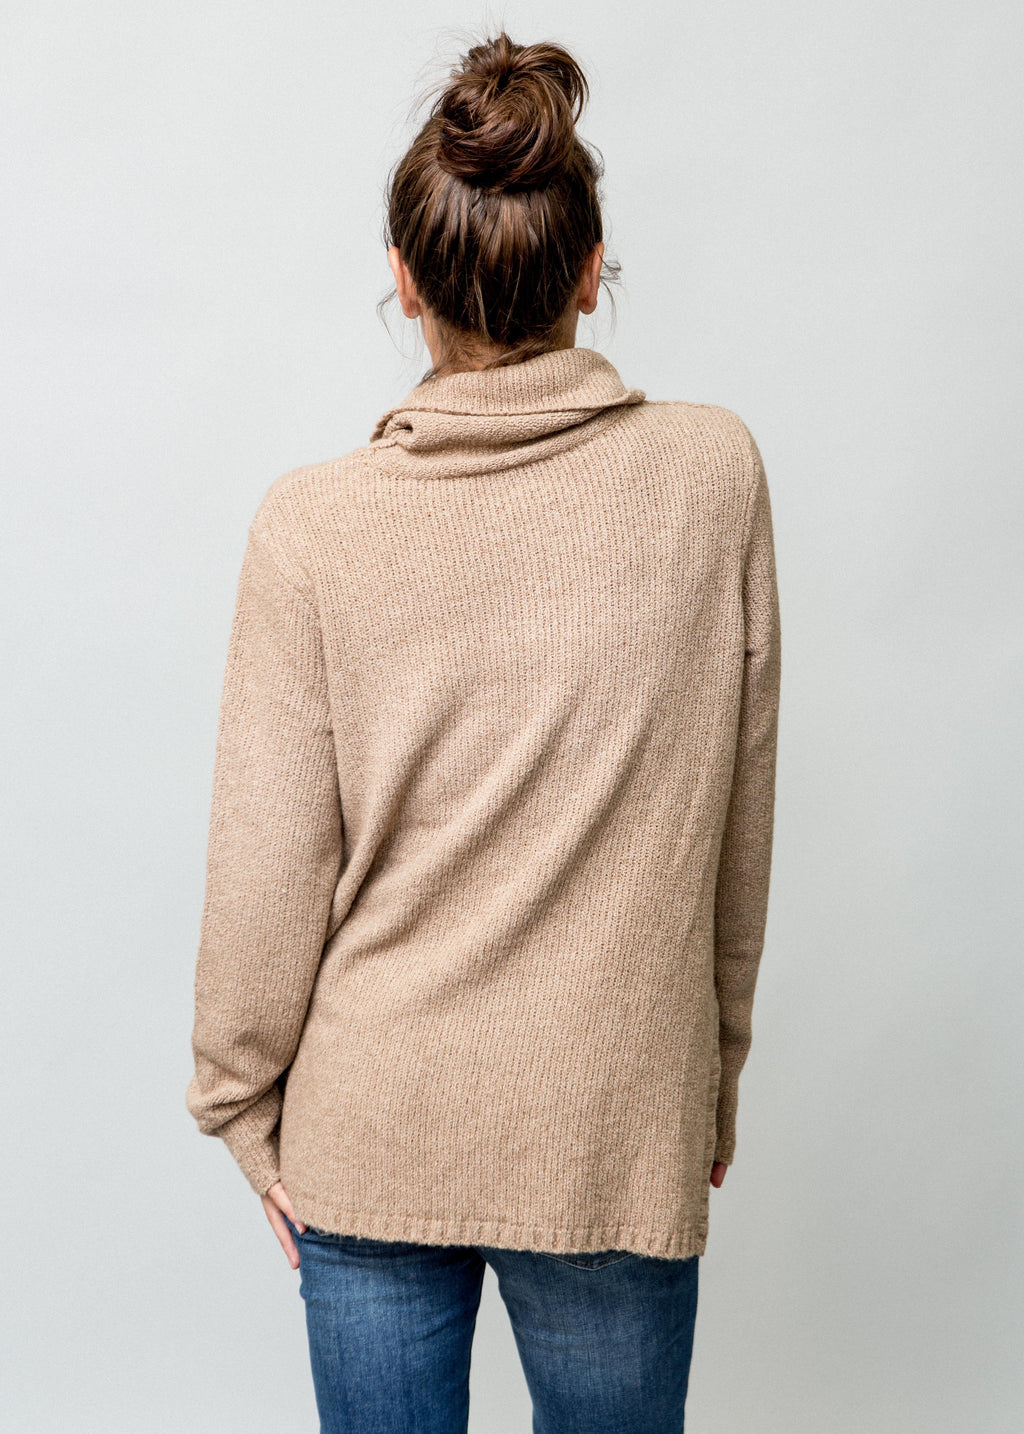 CRESSIDA CAPPUCCINO COLORED TUNIC SWEATER ON FEMALE MODEL BACK VIEW